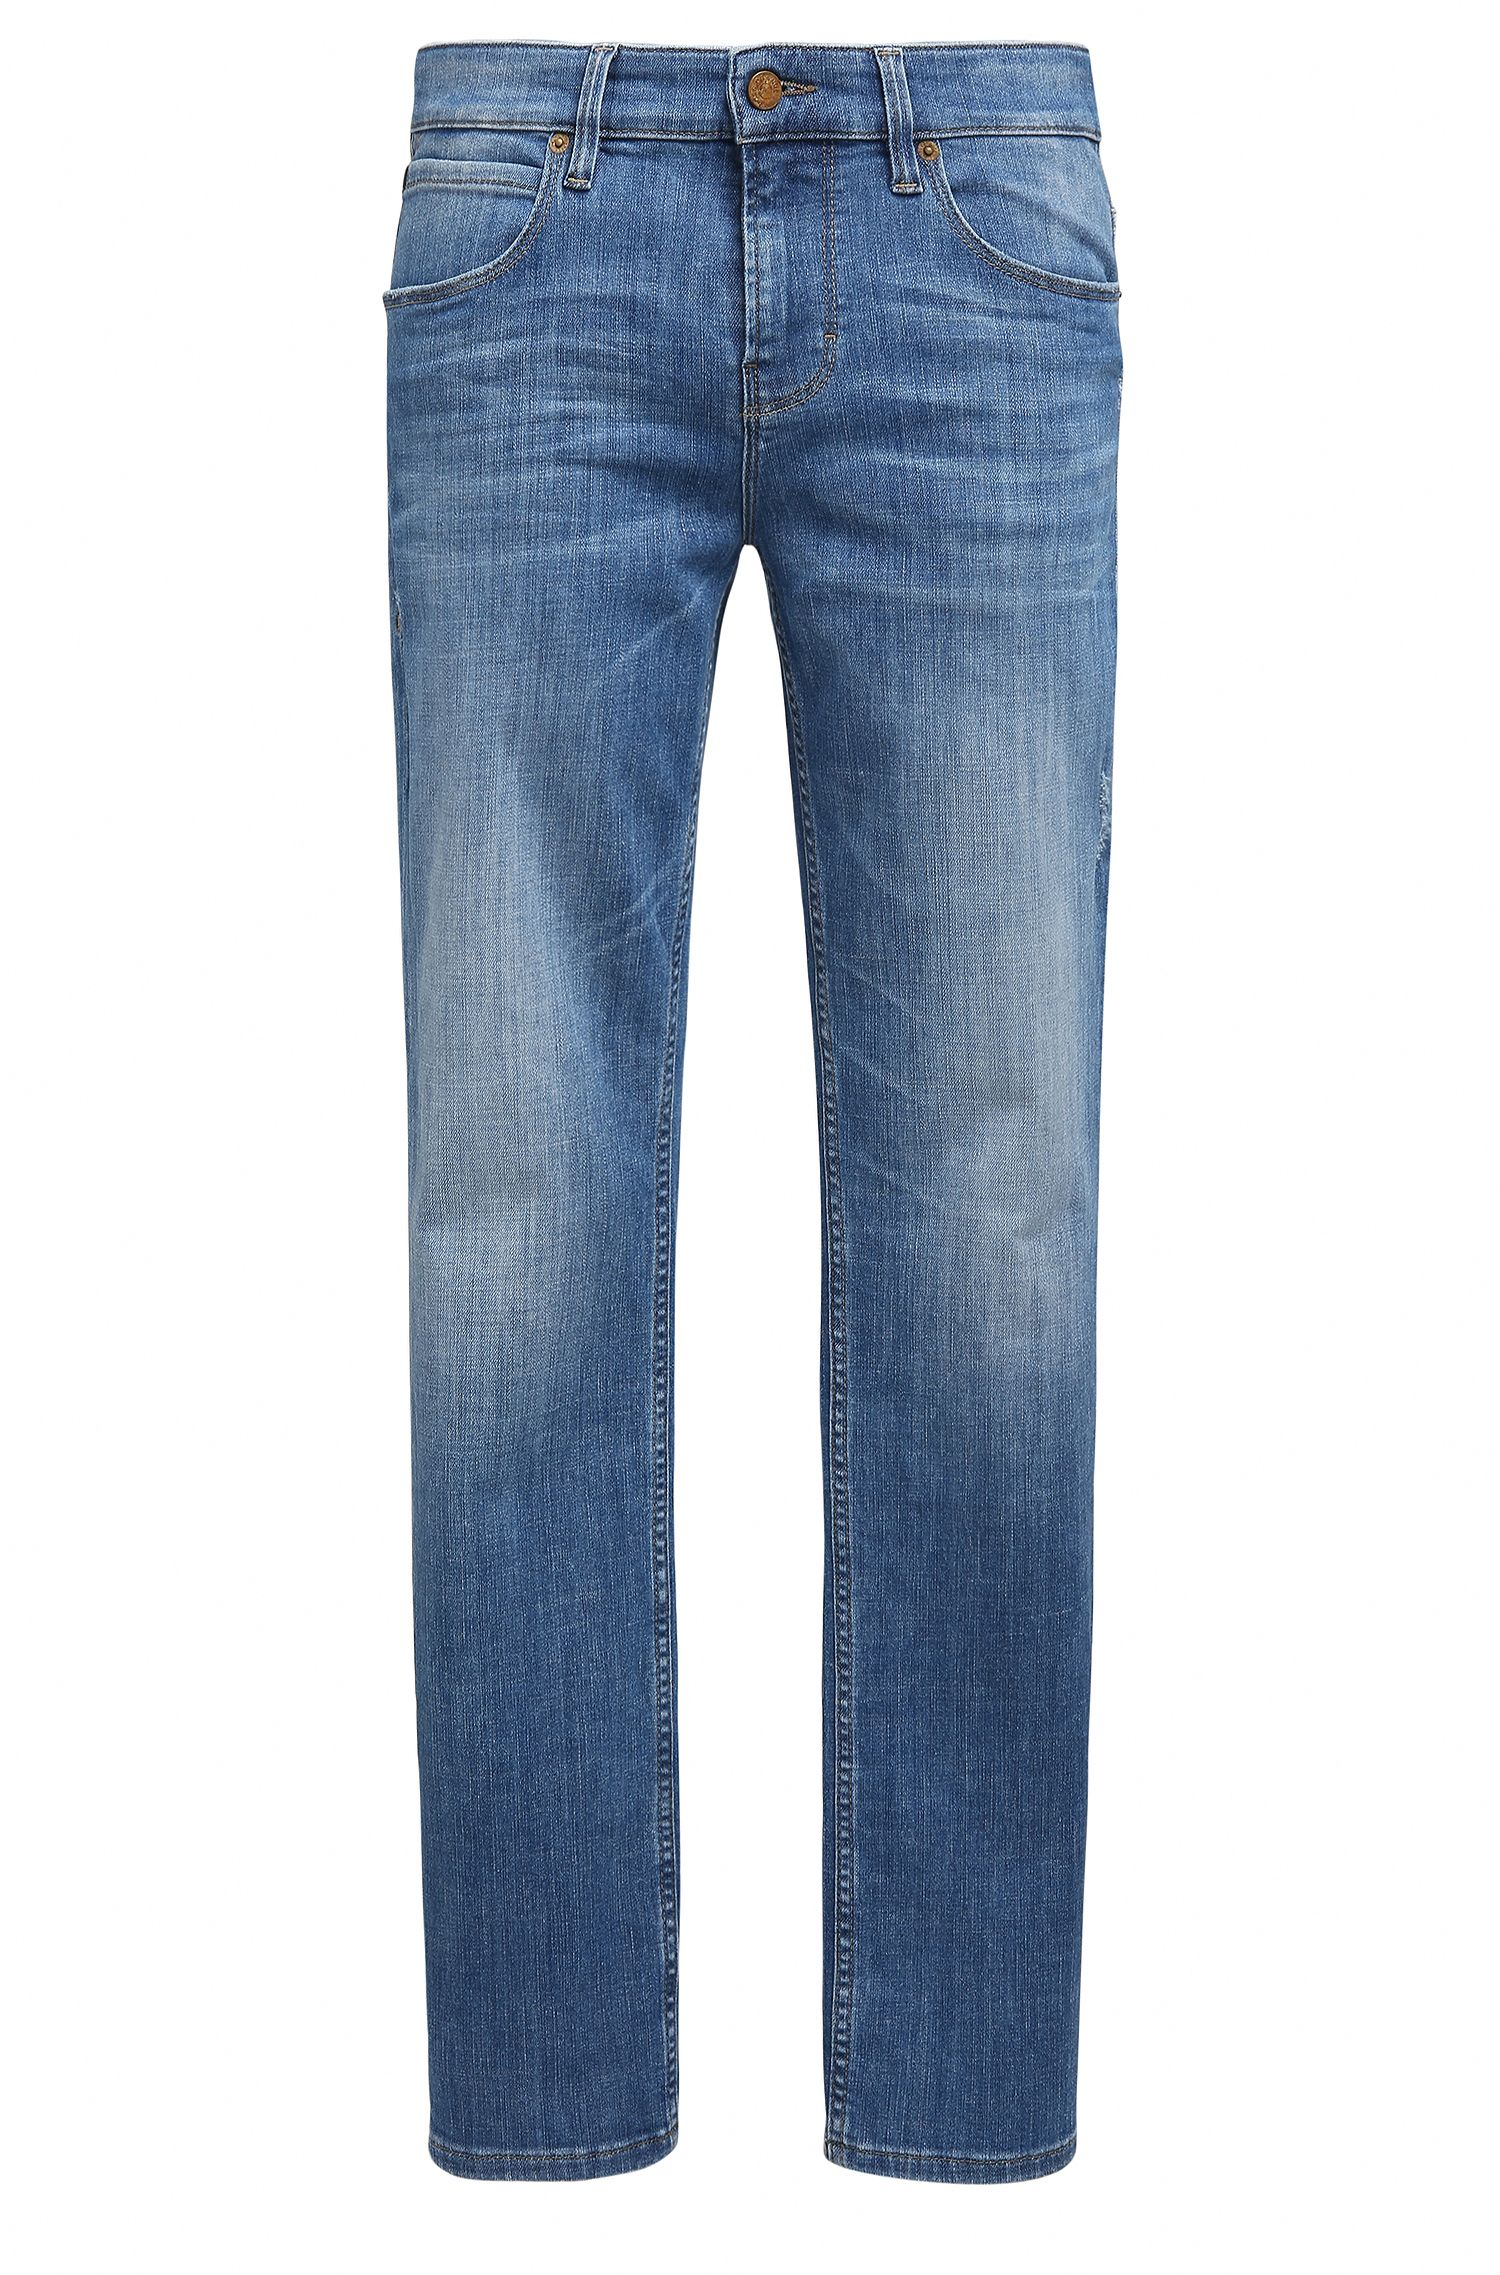 Stone Wash Stretch Cotton Jeans, Slim Leg | Orange63